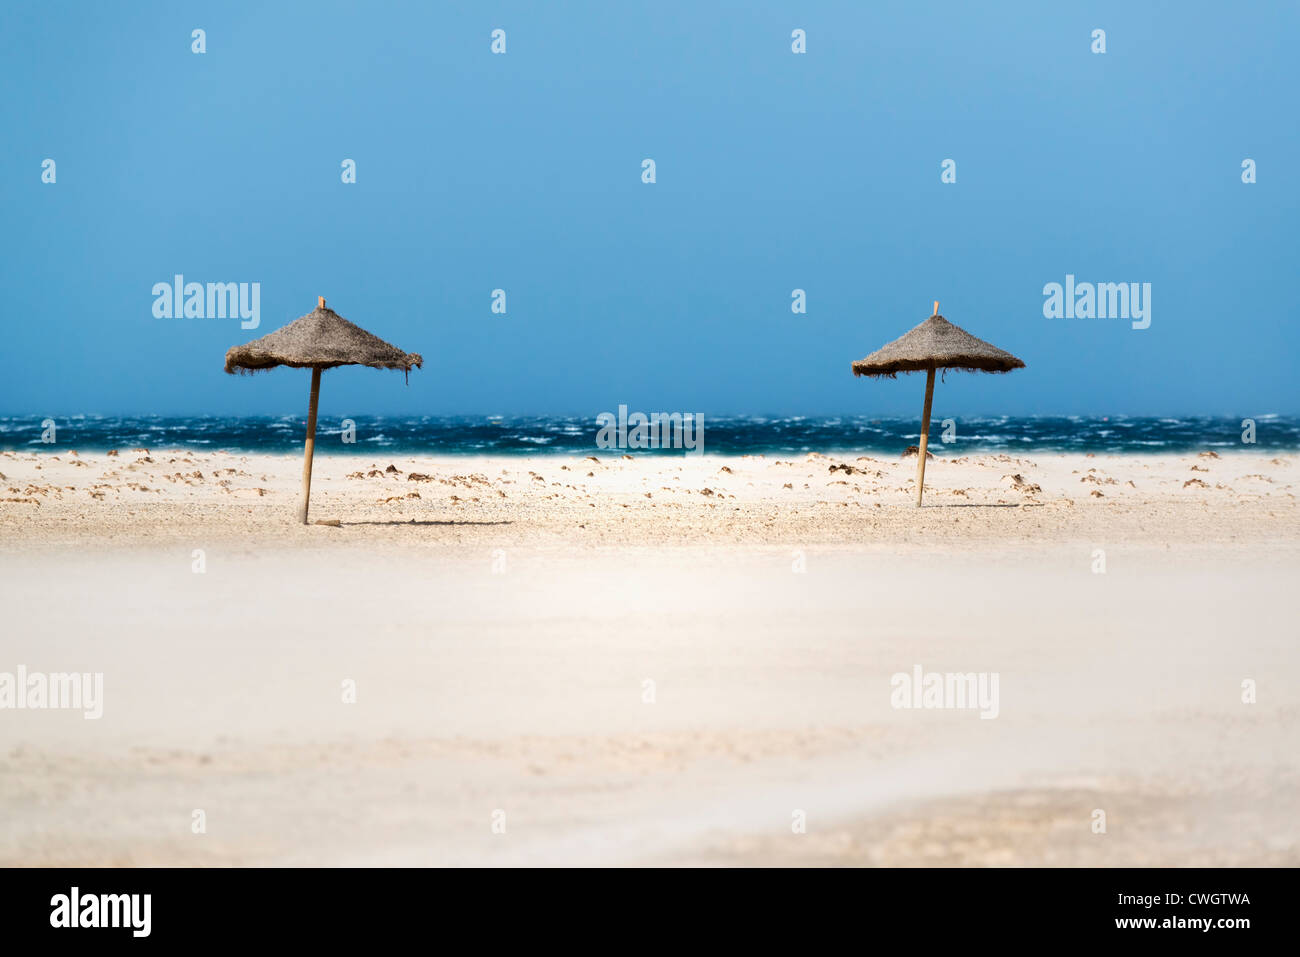 Tarifa, Costa de la Luz, Cadiz, Andalusia, Spain. Stock Photo